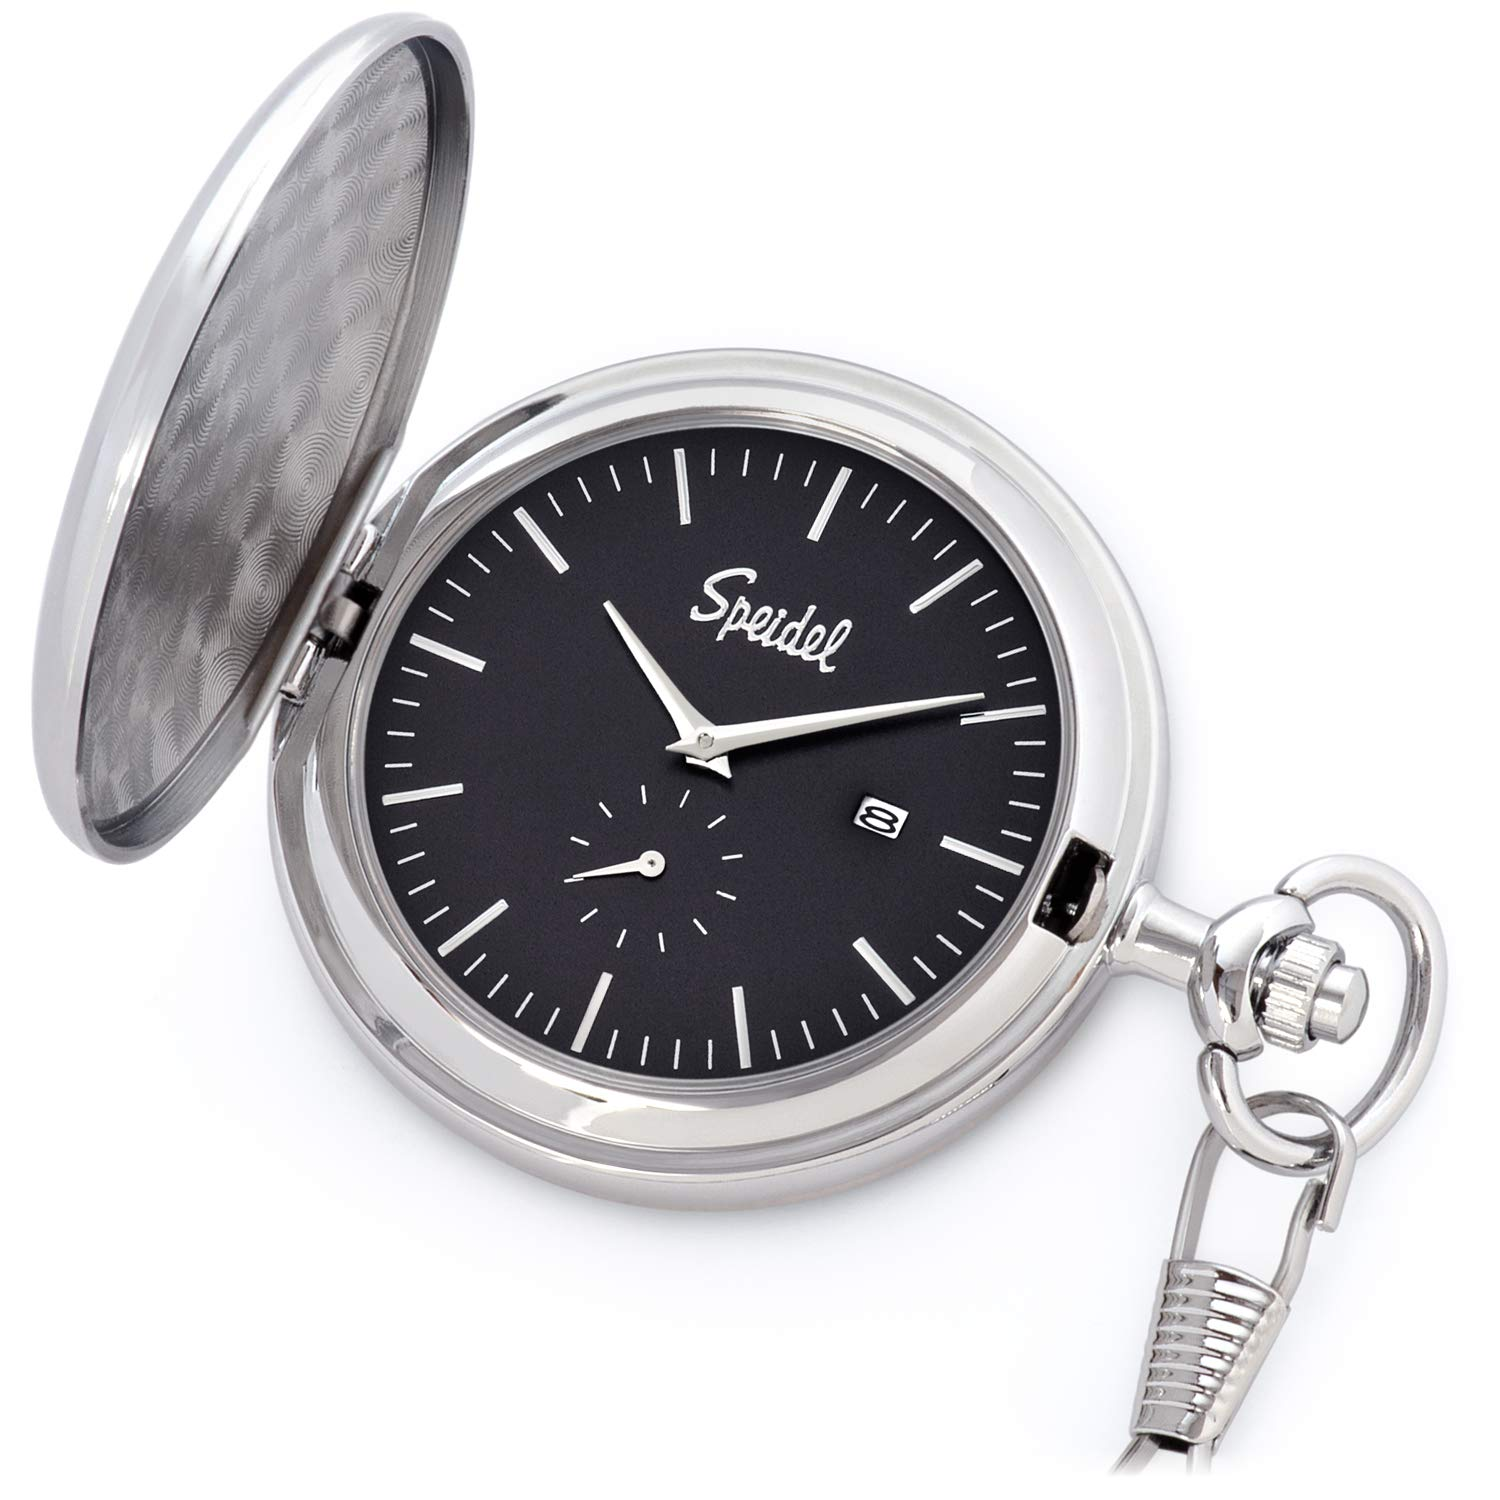 Speidel Classic Brushed Satin Silver-Tone Engravable Pocket Watch with 14'' Chain, Black Dial, Date Window, and Seconds Sub-Dial